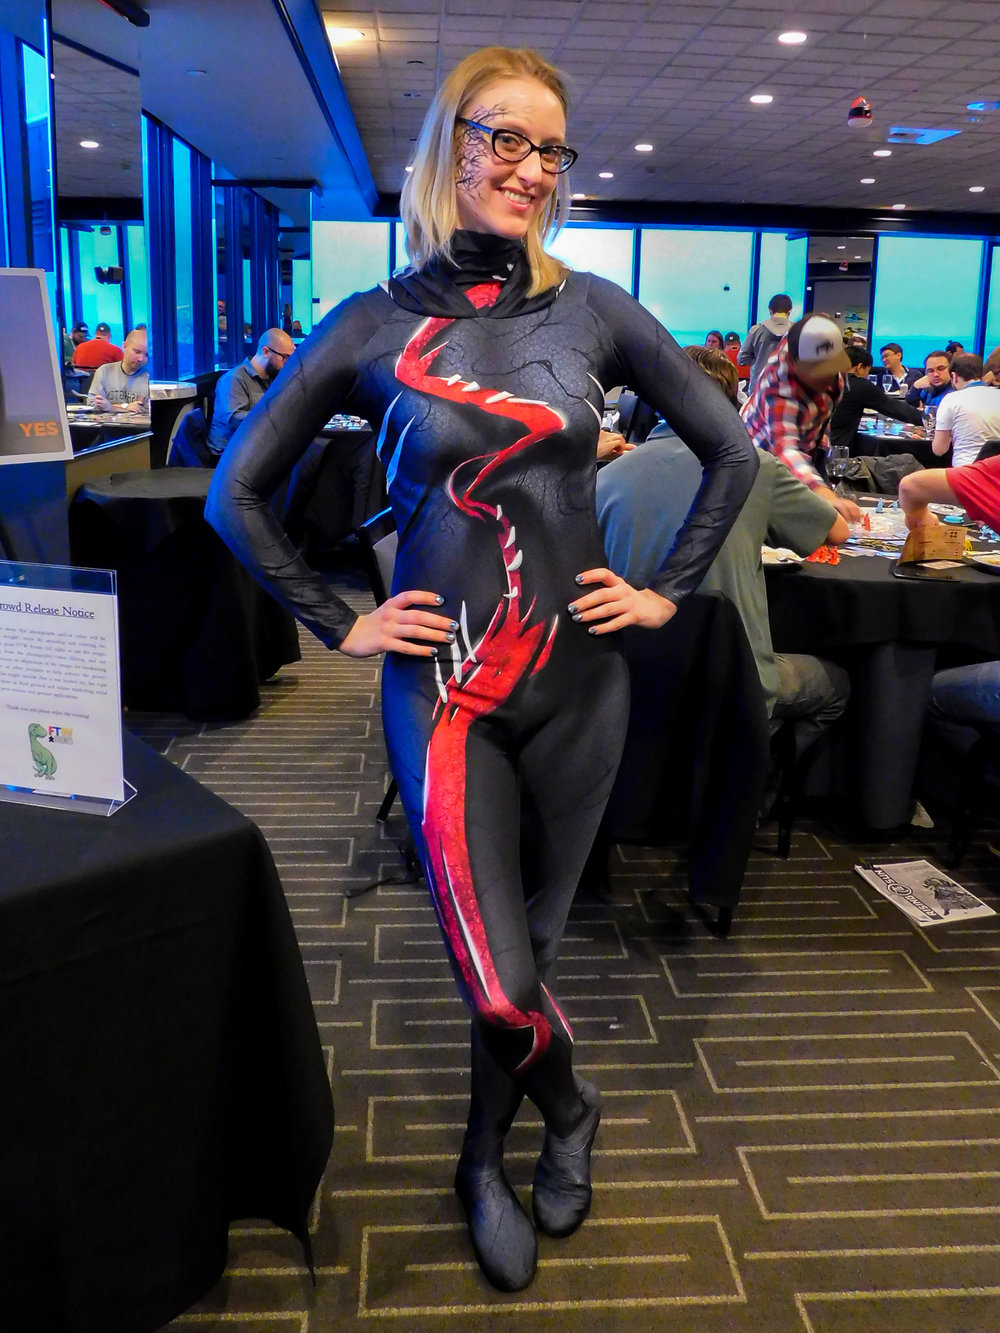 Come strut your stuff in our cosplay contest and win prizes!